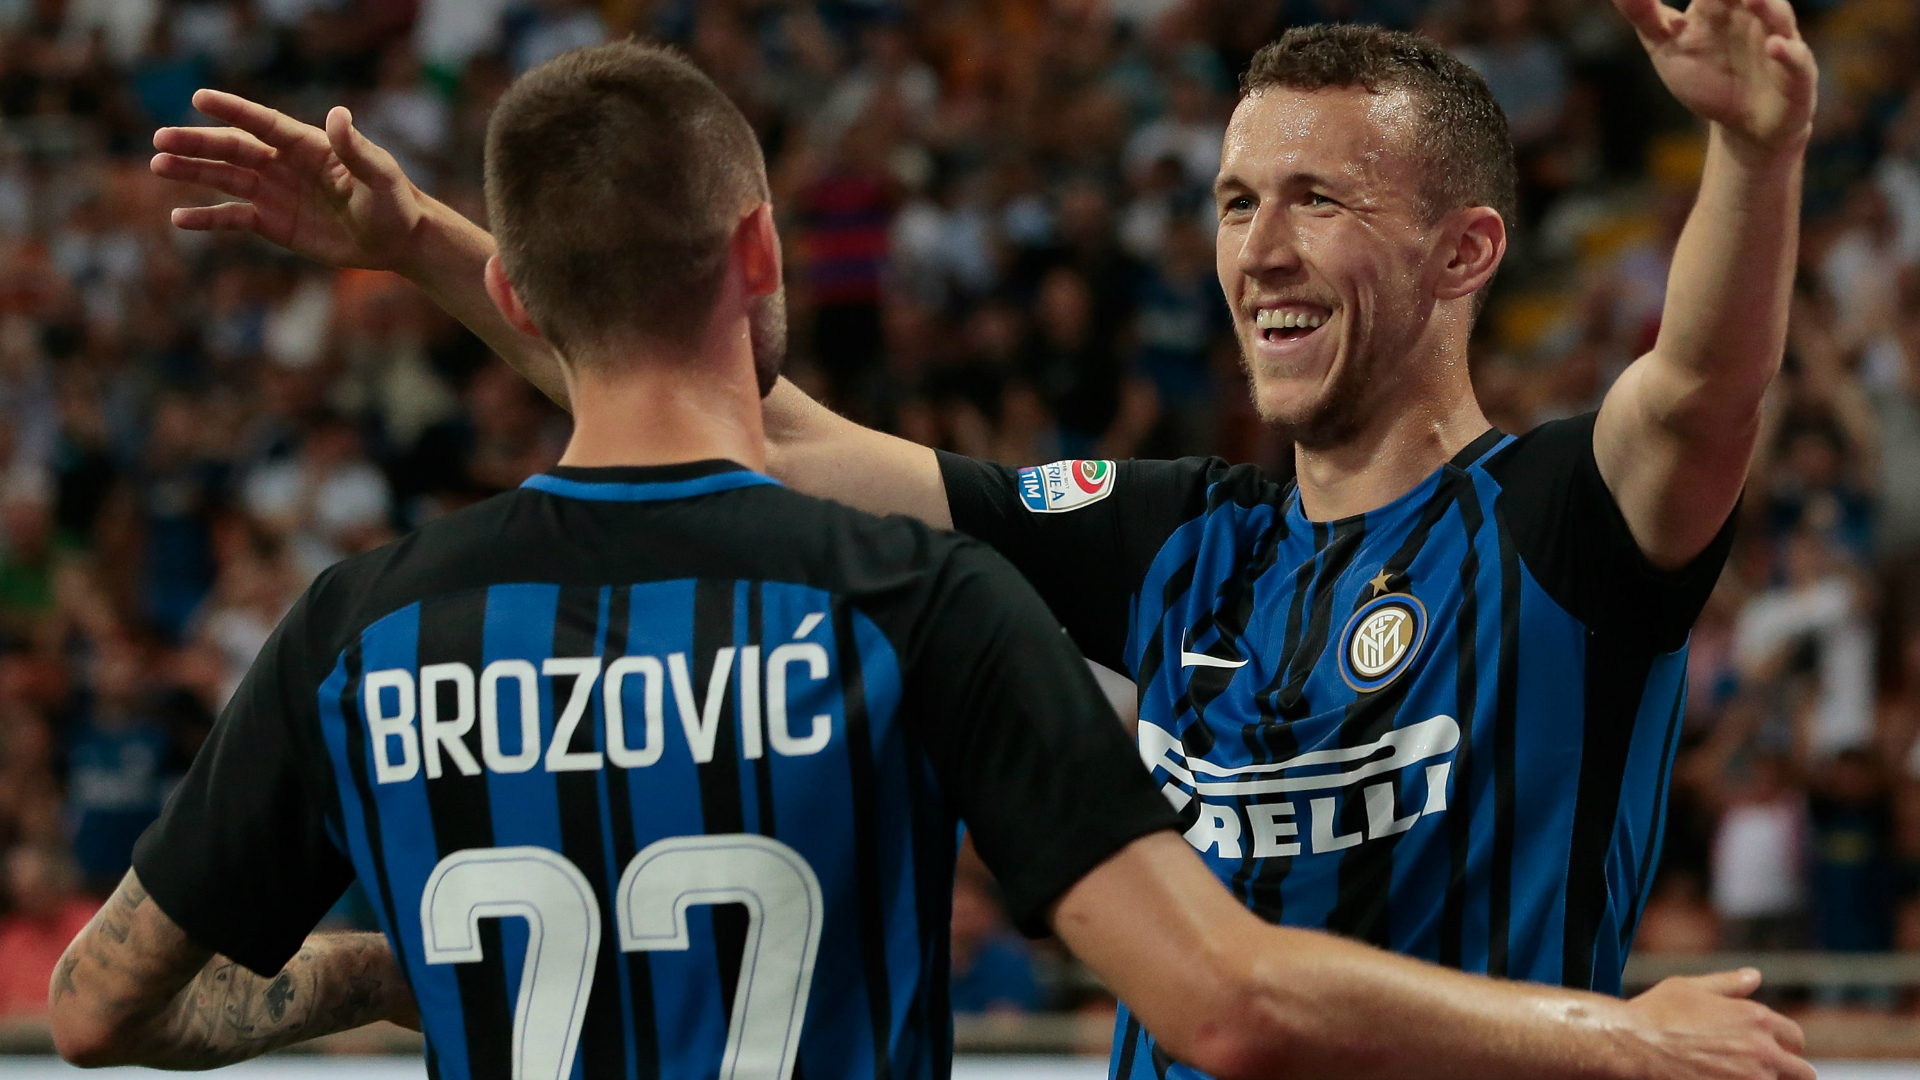 Perisic Juventus, clamorosa indiscrezione: l'Inter dice no!